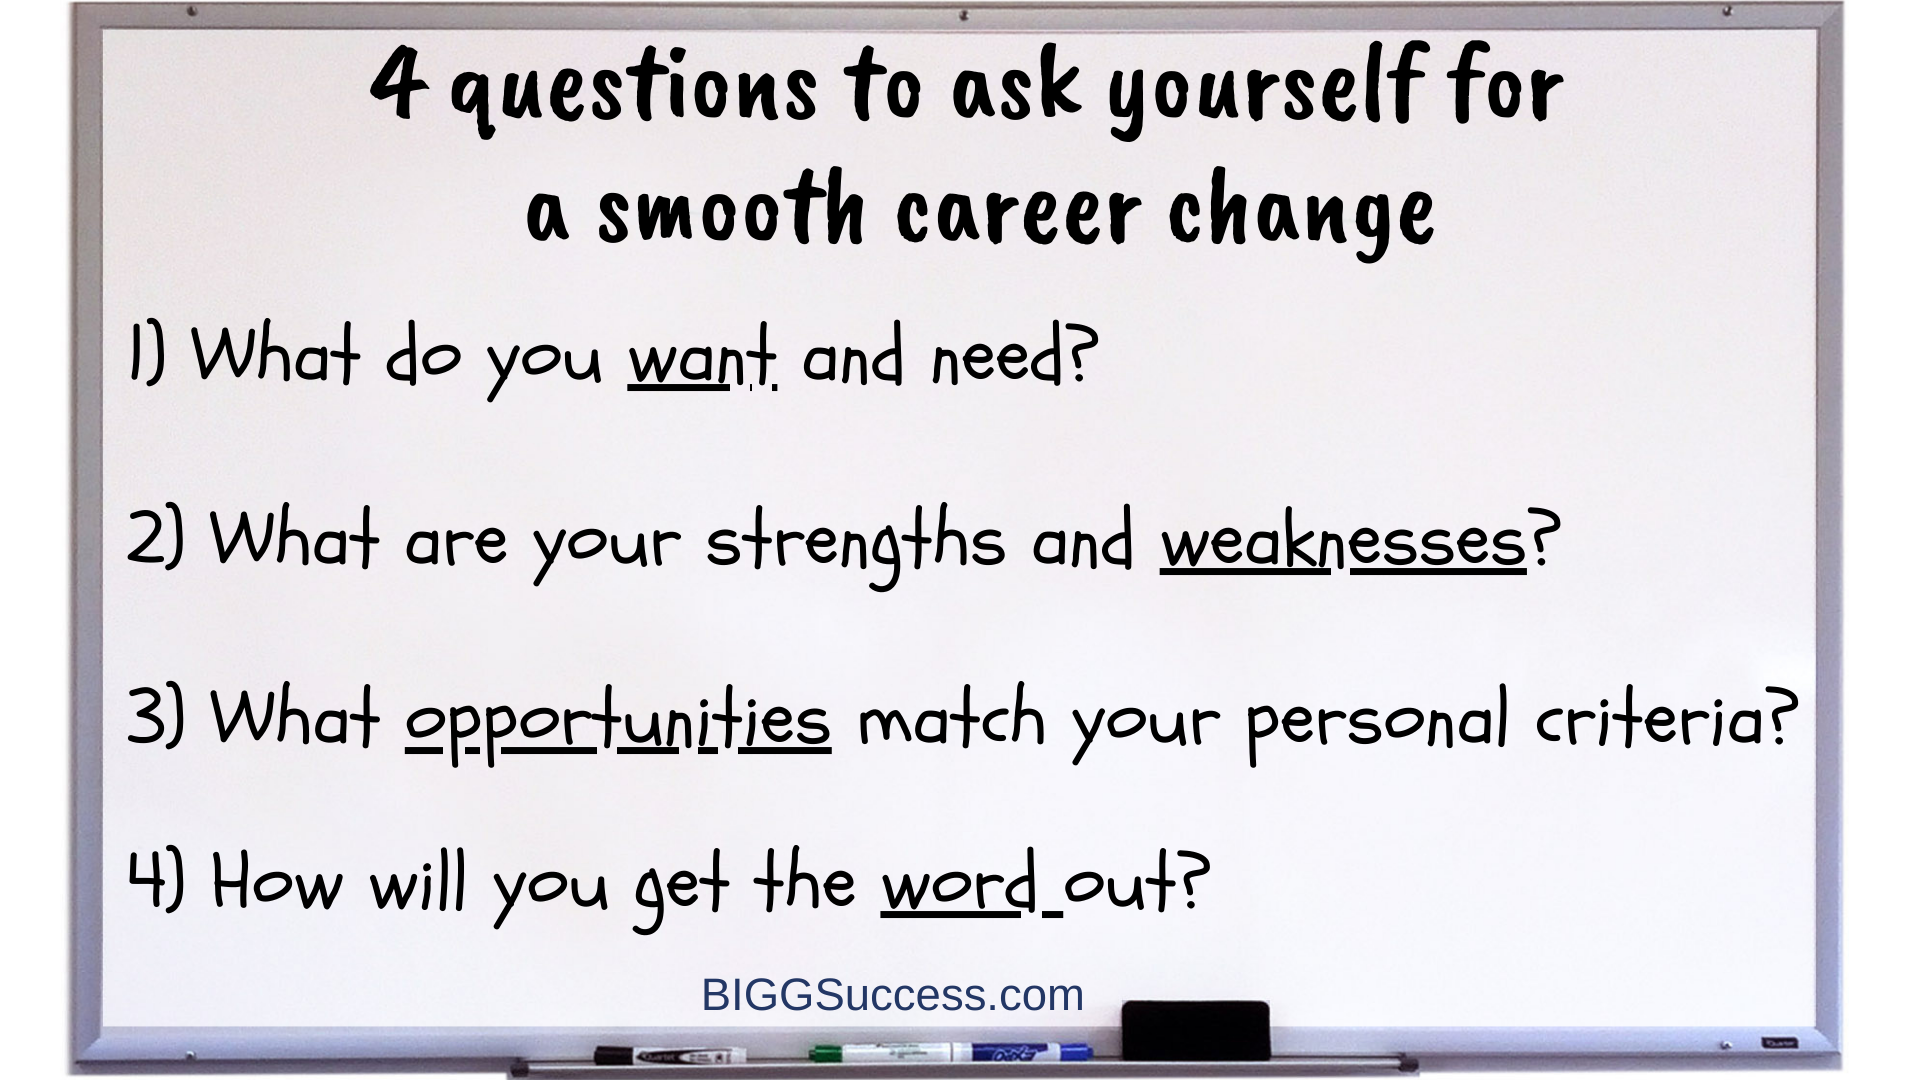 Whiteboard 1064-4 questions for a smooth career change